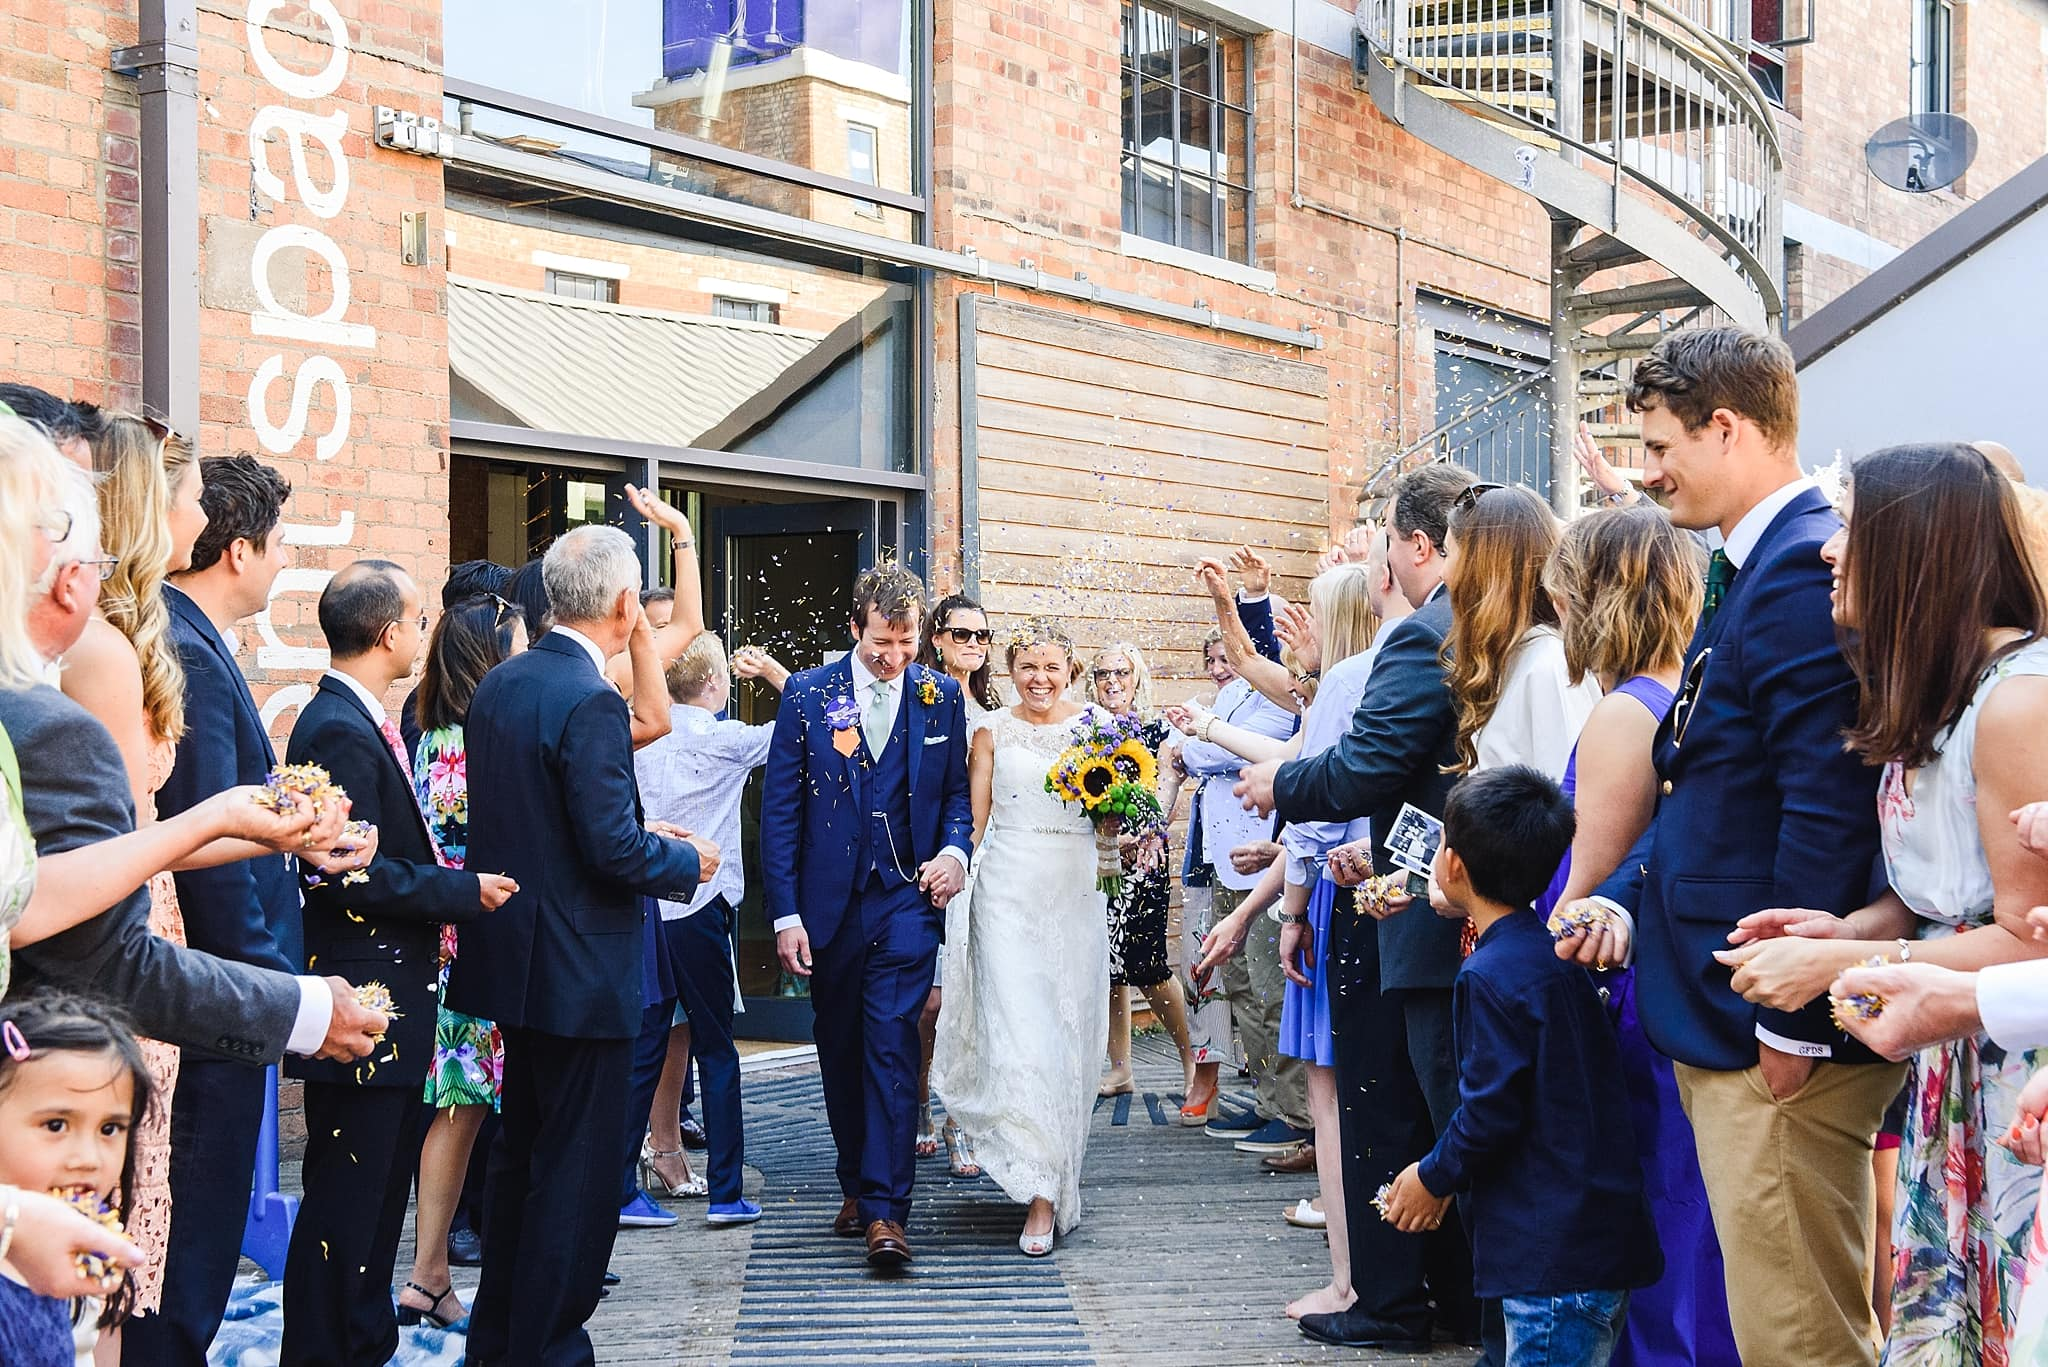 guests throw confetti at newly married couple leaving the Paintwork's event space wedding